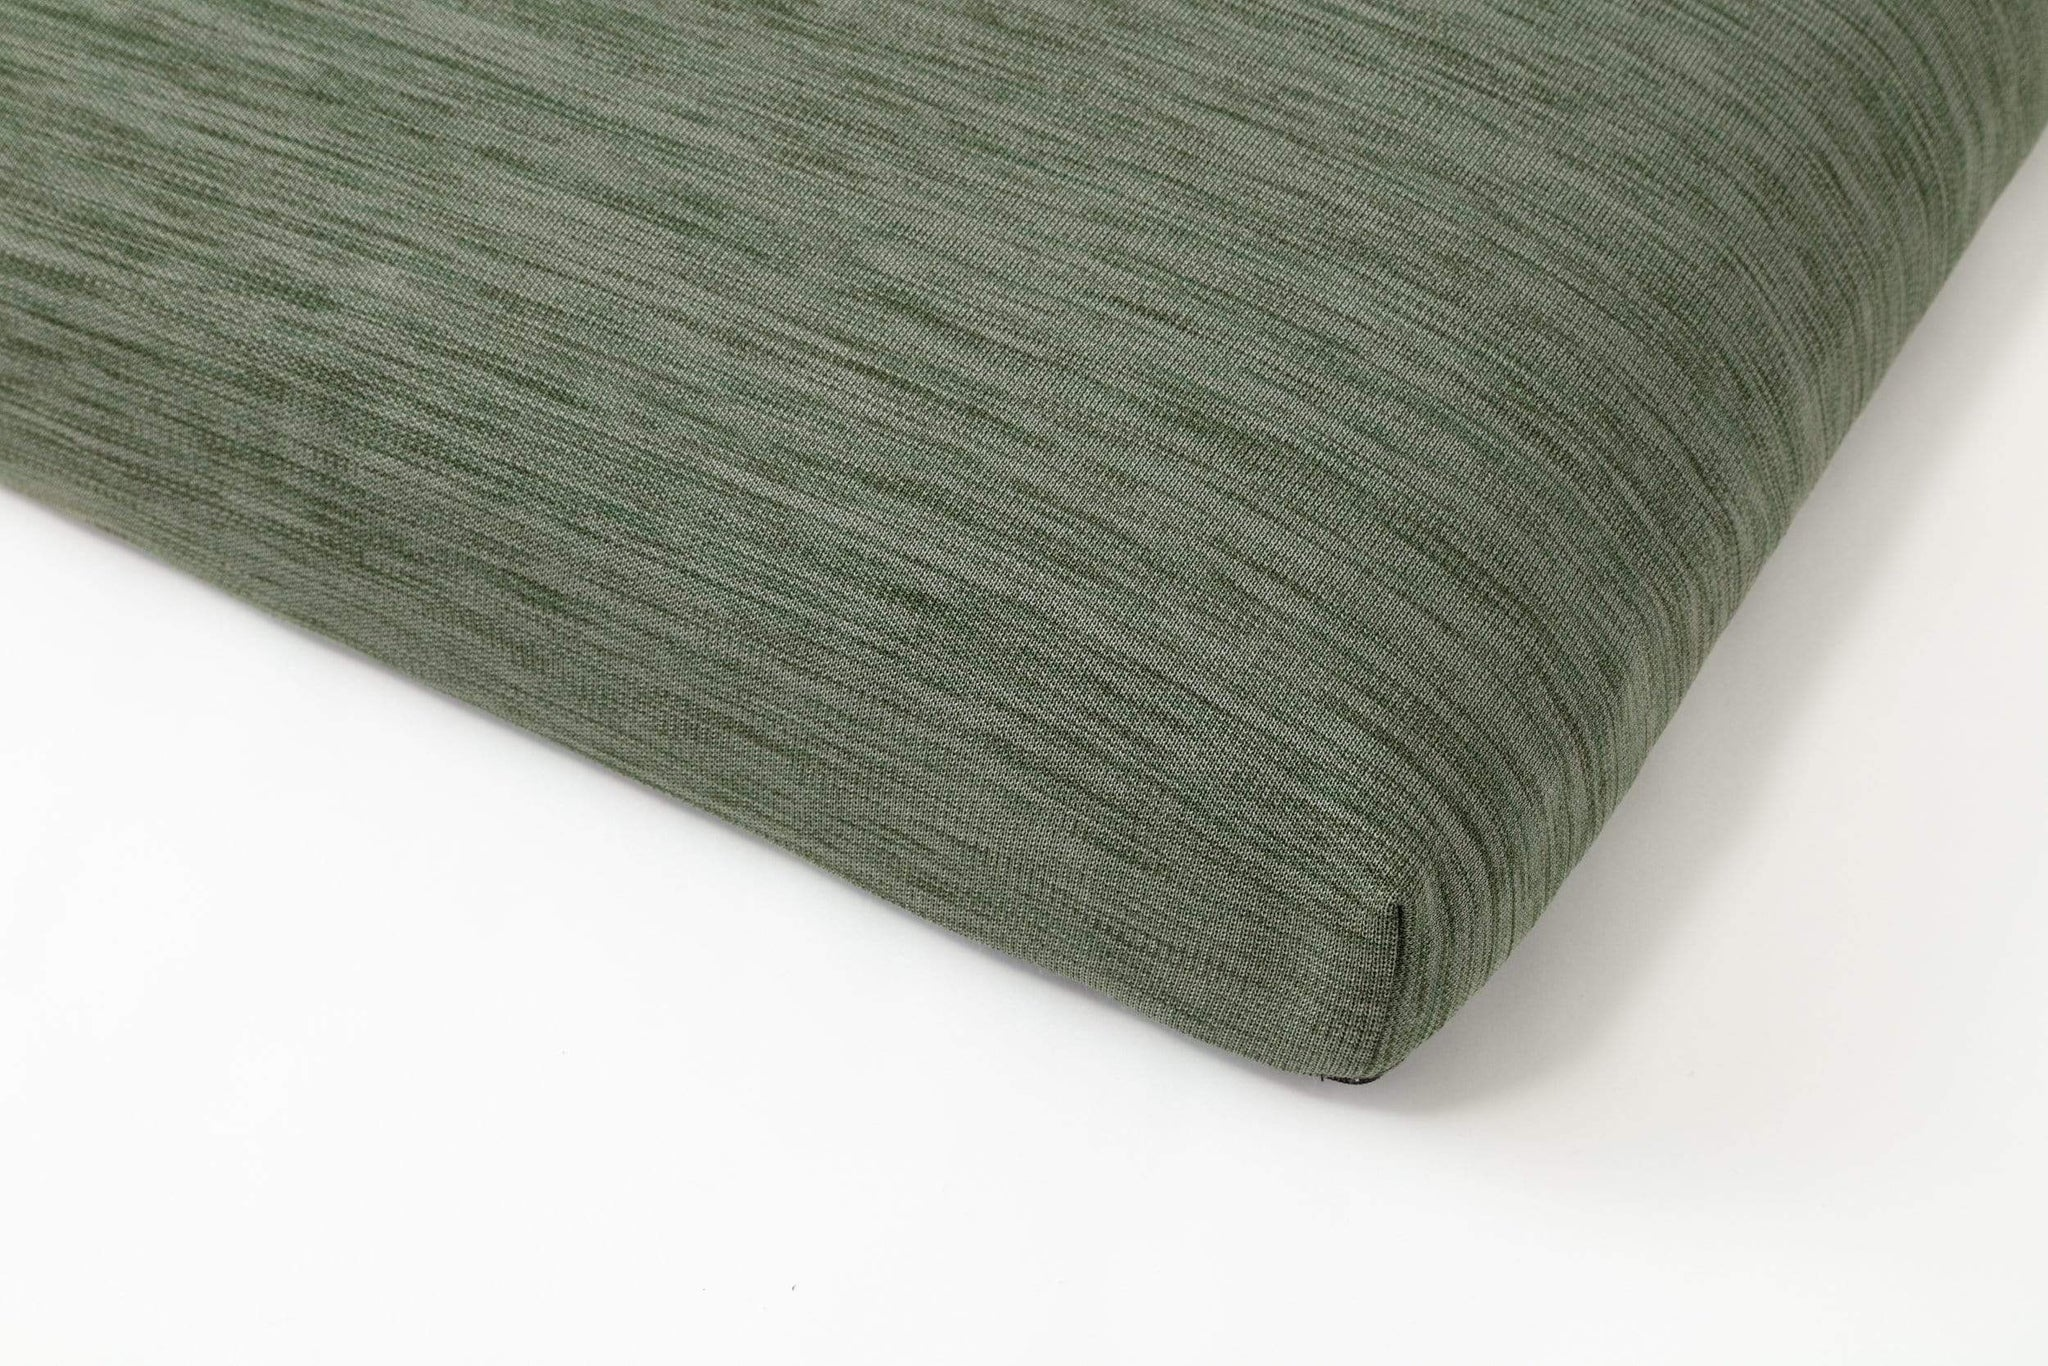 Laylo Pets Minimalist Sage Dog Bed or Bed Cover Lay Lo Pets